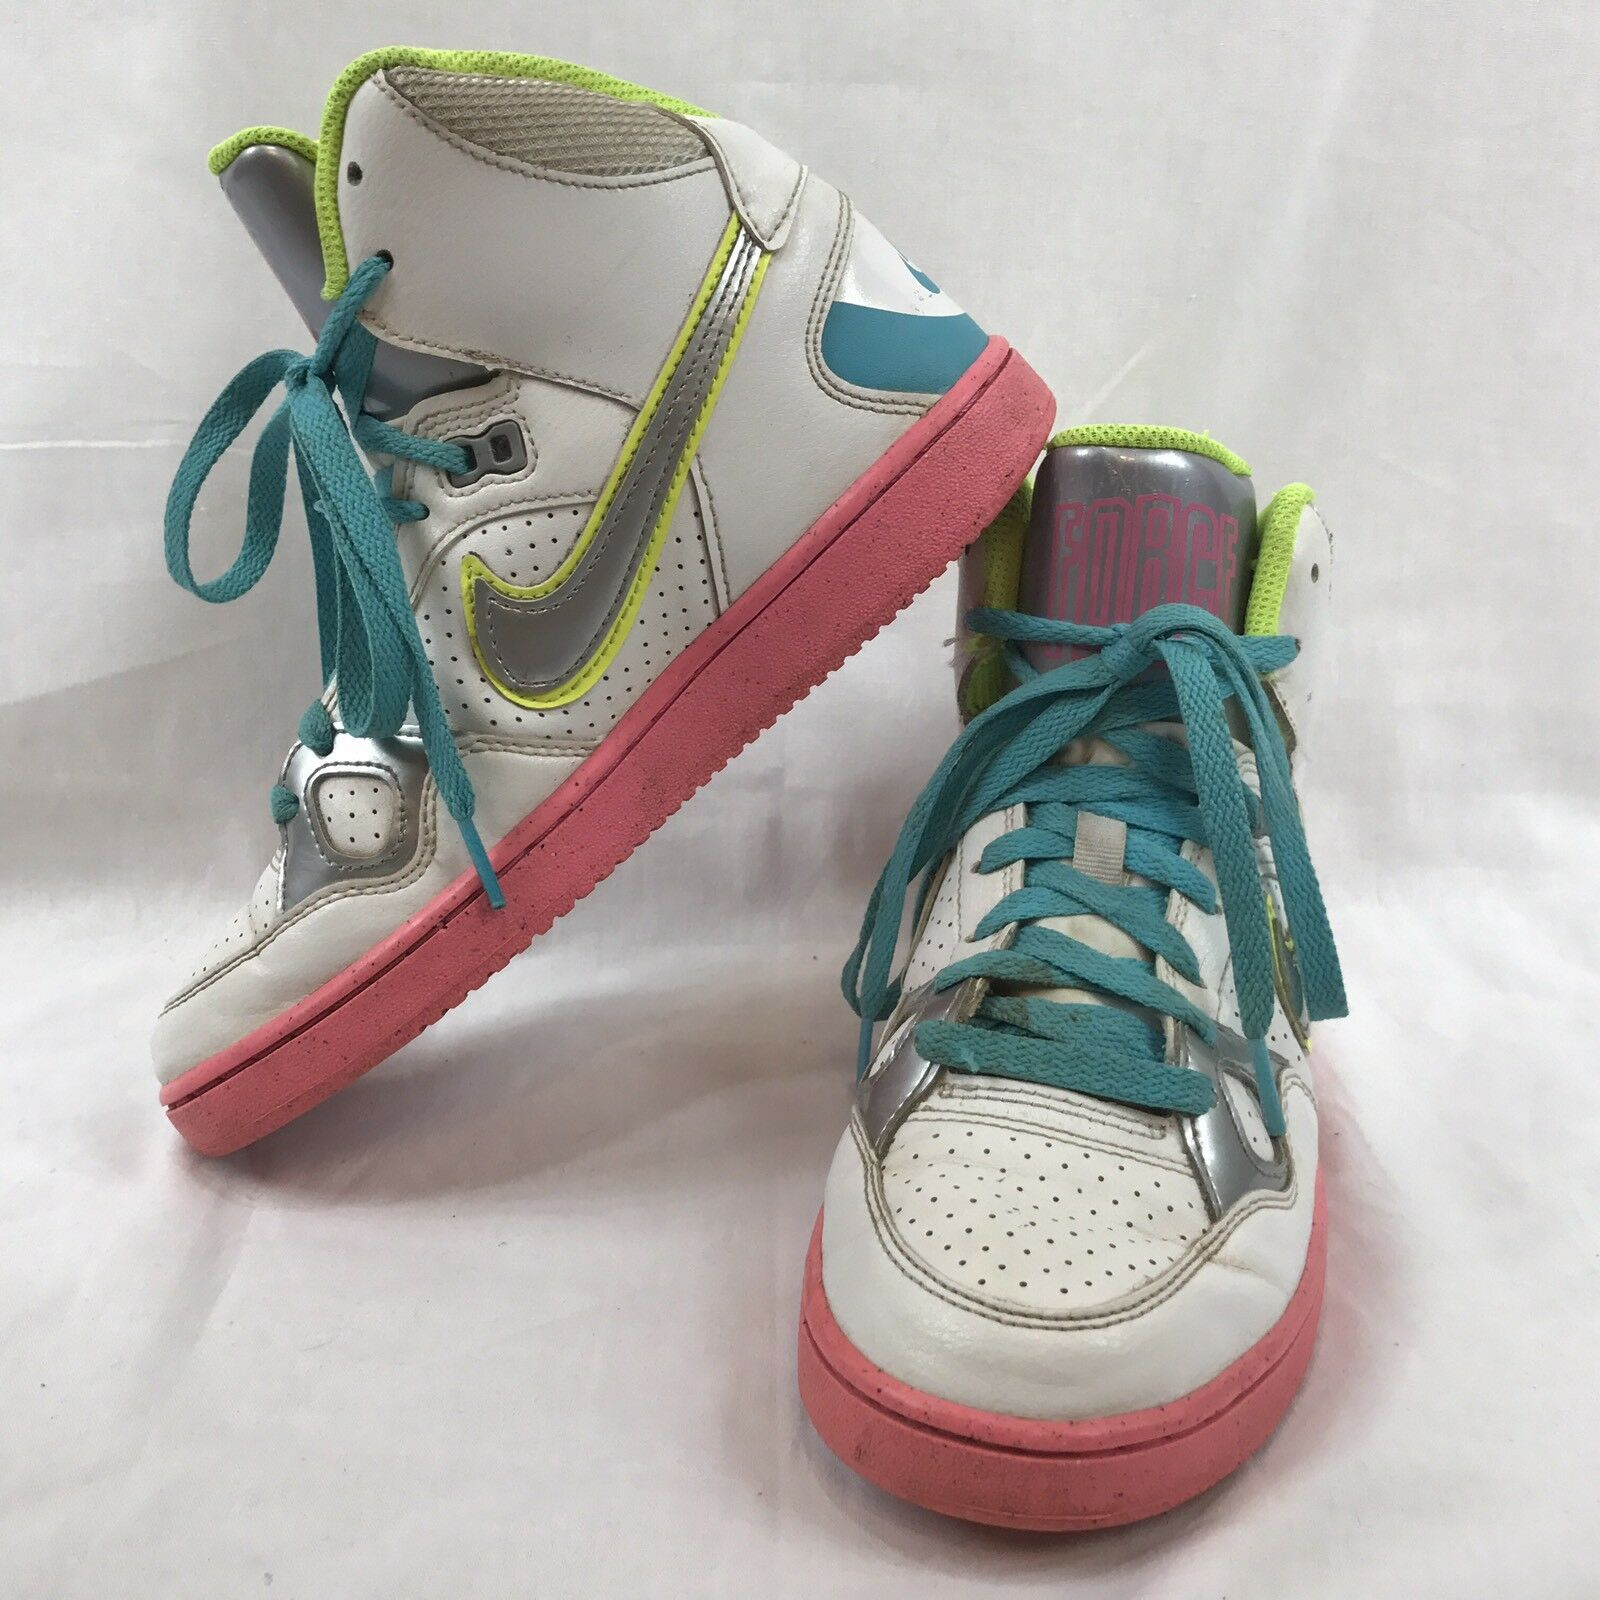 2013 Nike Son Of Force Mid Comfortable The latest discount shoes for men and women